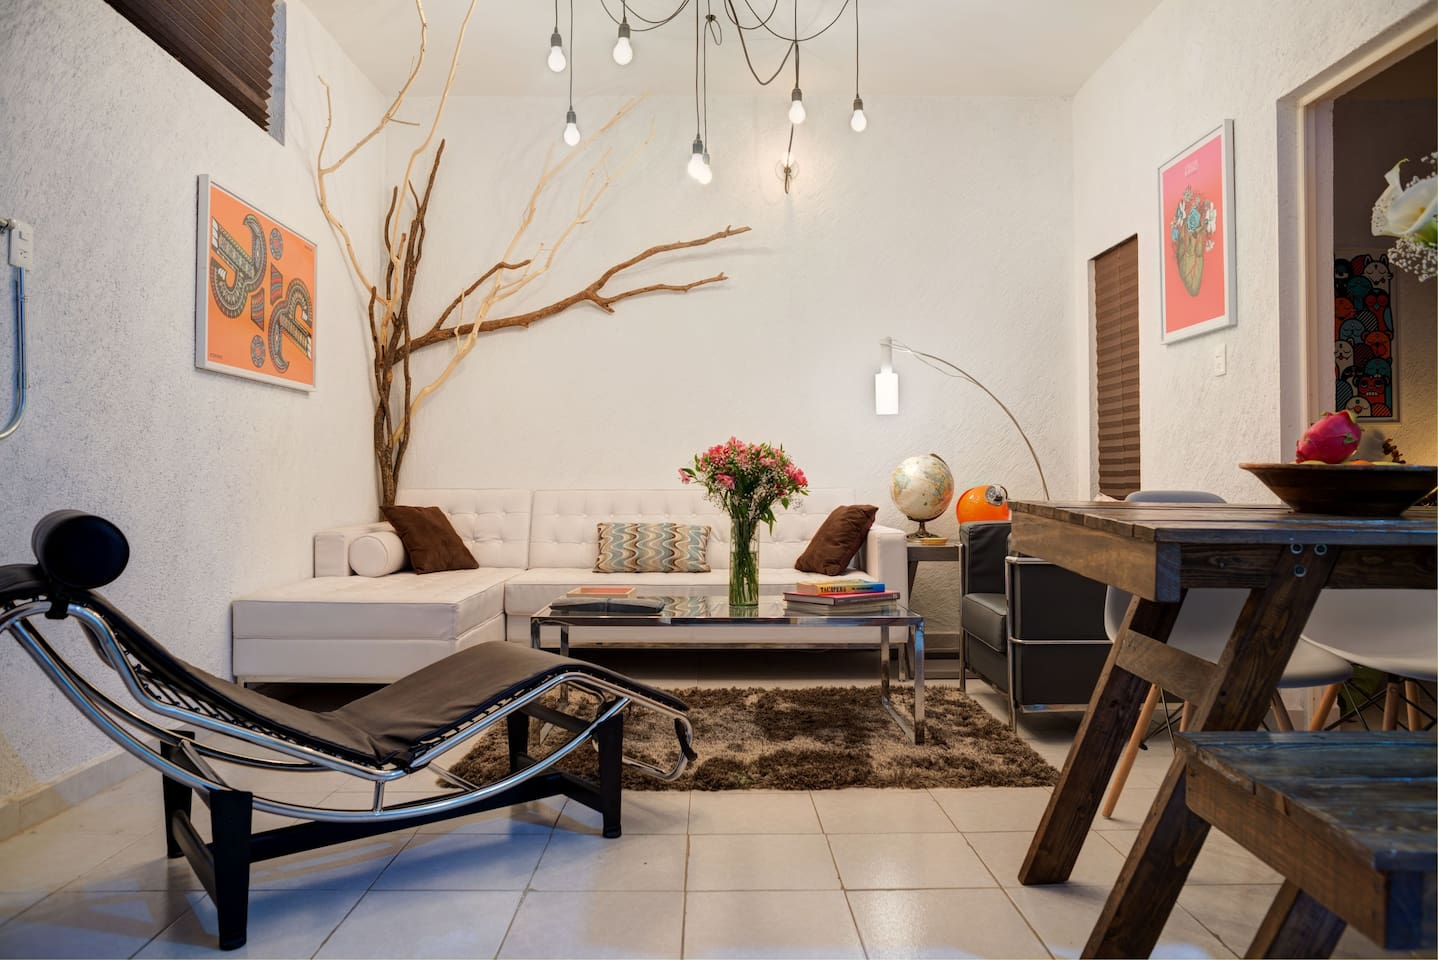 living room, whit designers furniture, decorated whit cool mexican modern illustrations